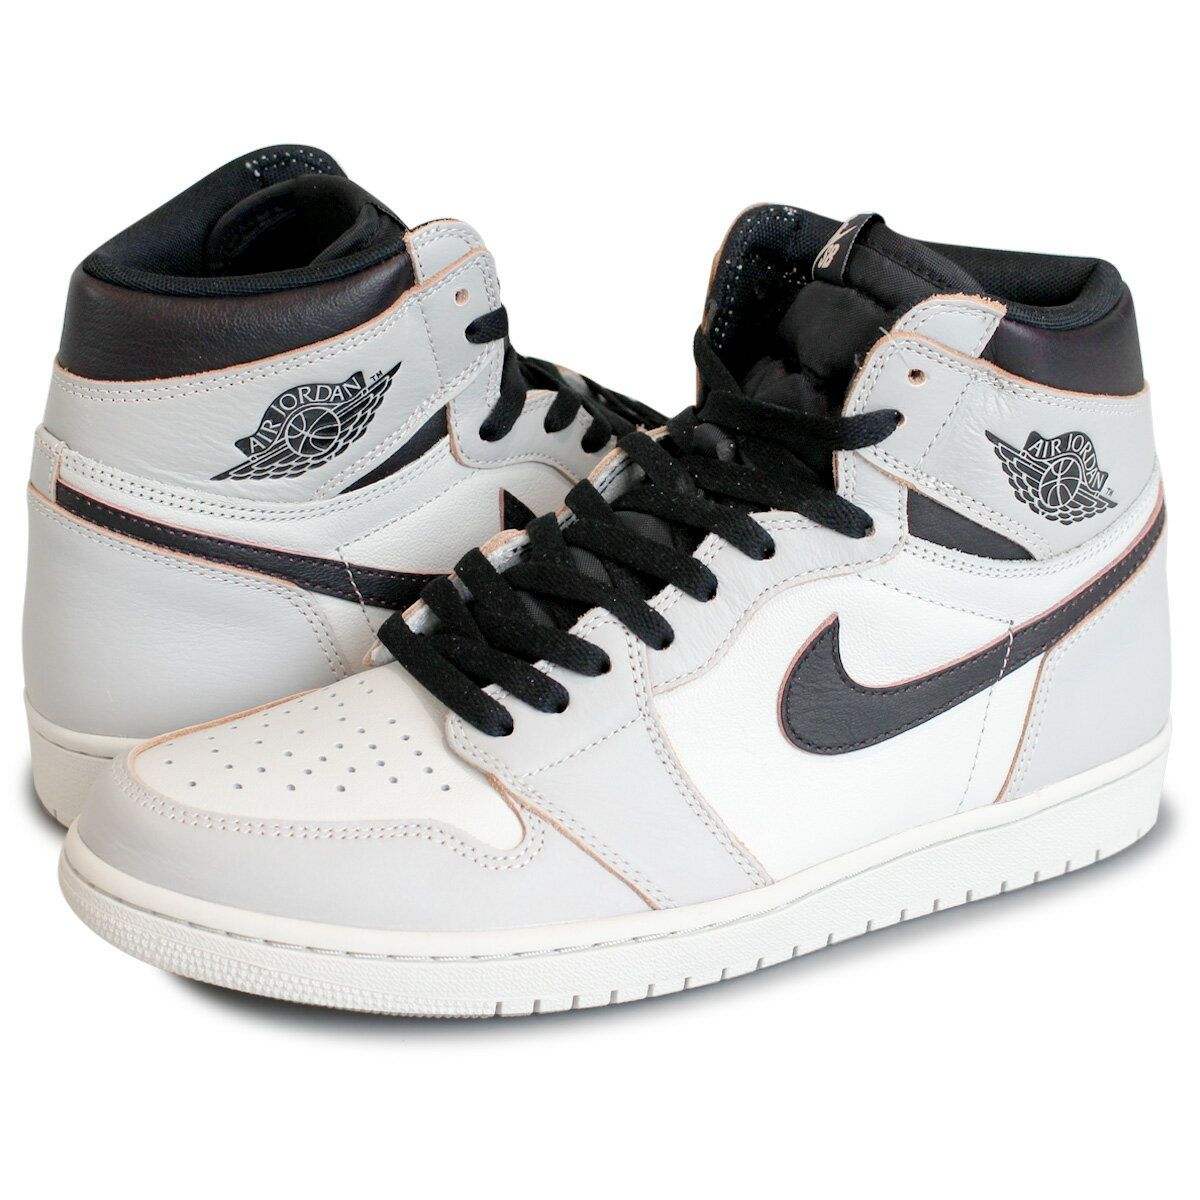 メンズ靴, スニーカー  NIKE SB 1 AIR JORDAN 1 RETRO HIGH OG DEFIANT CD6578-006